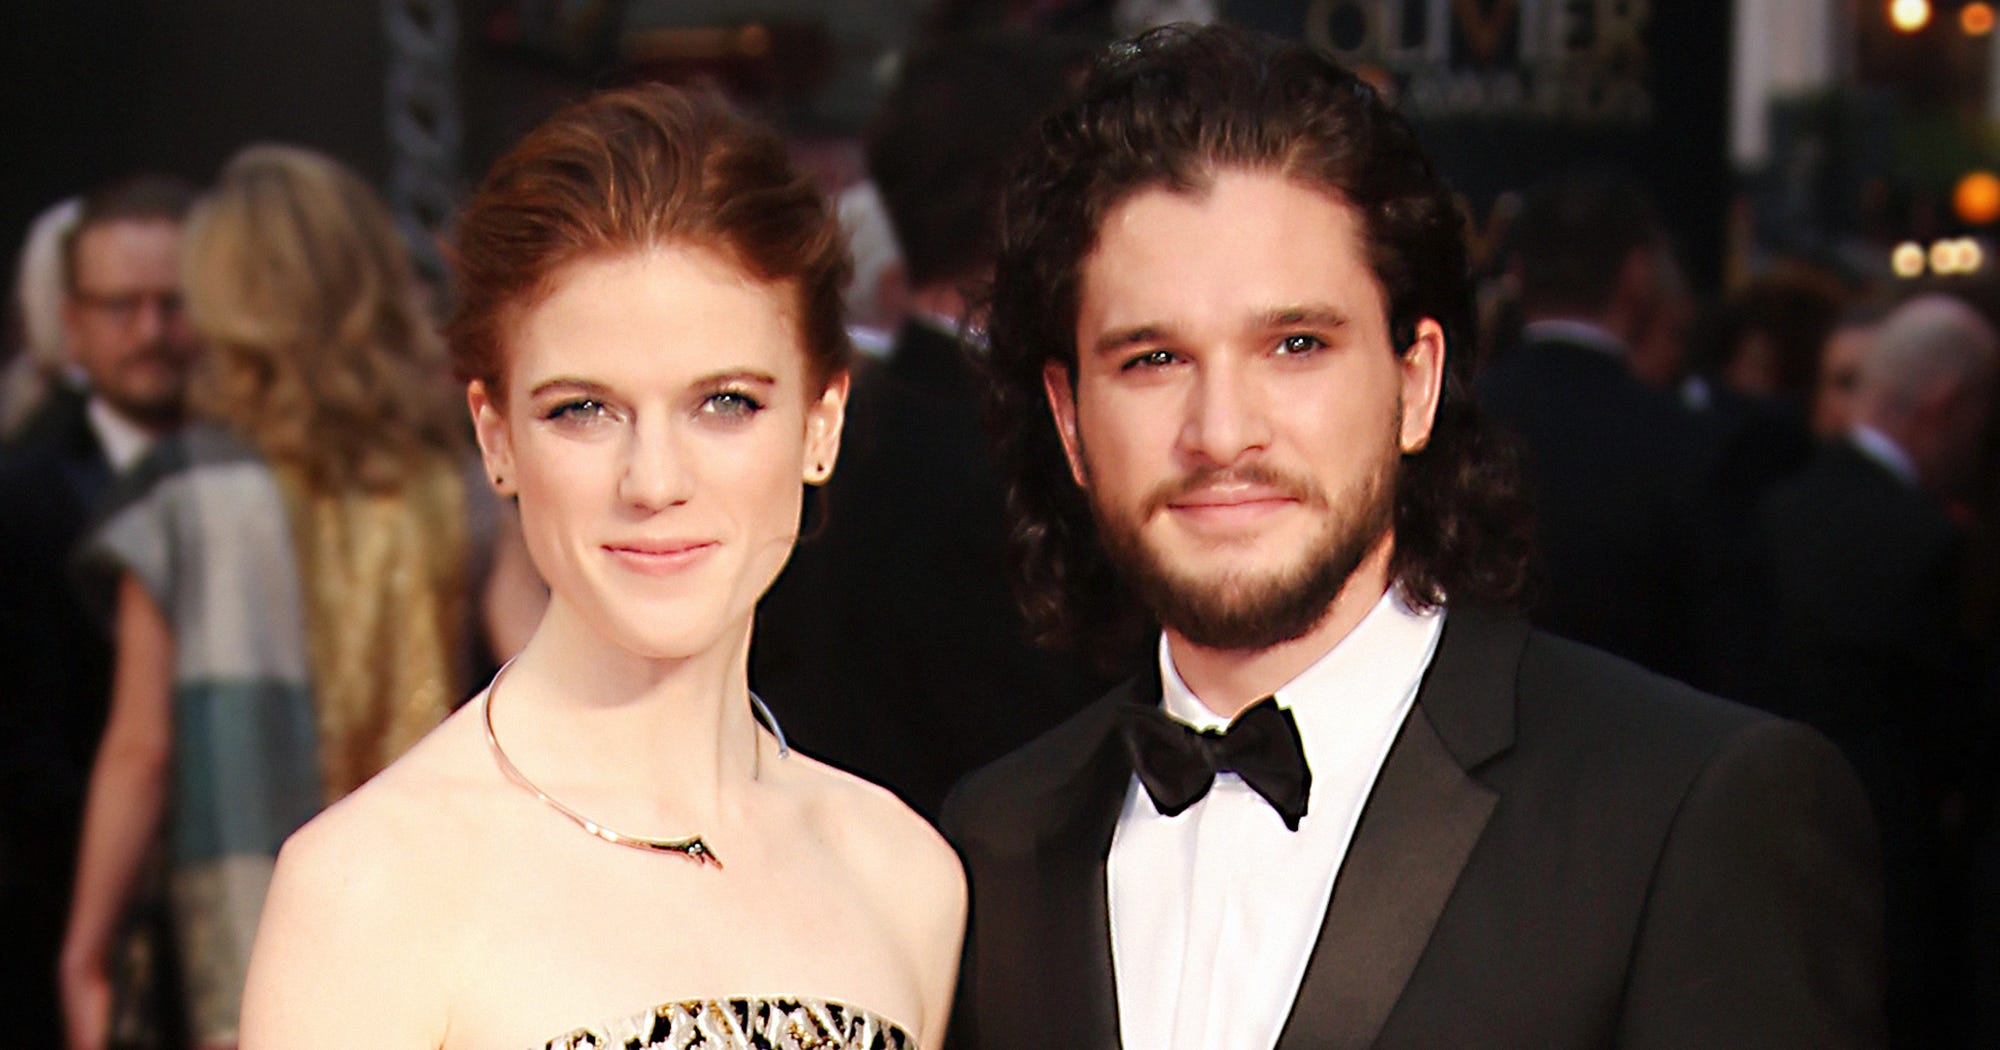 Kit harington og Rose Leslie dating 2016